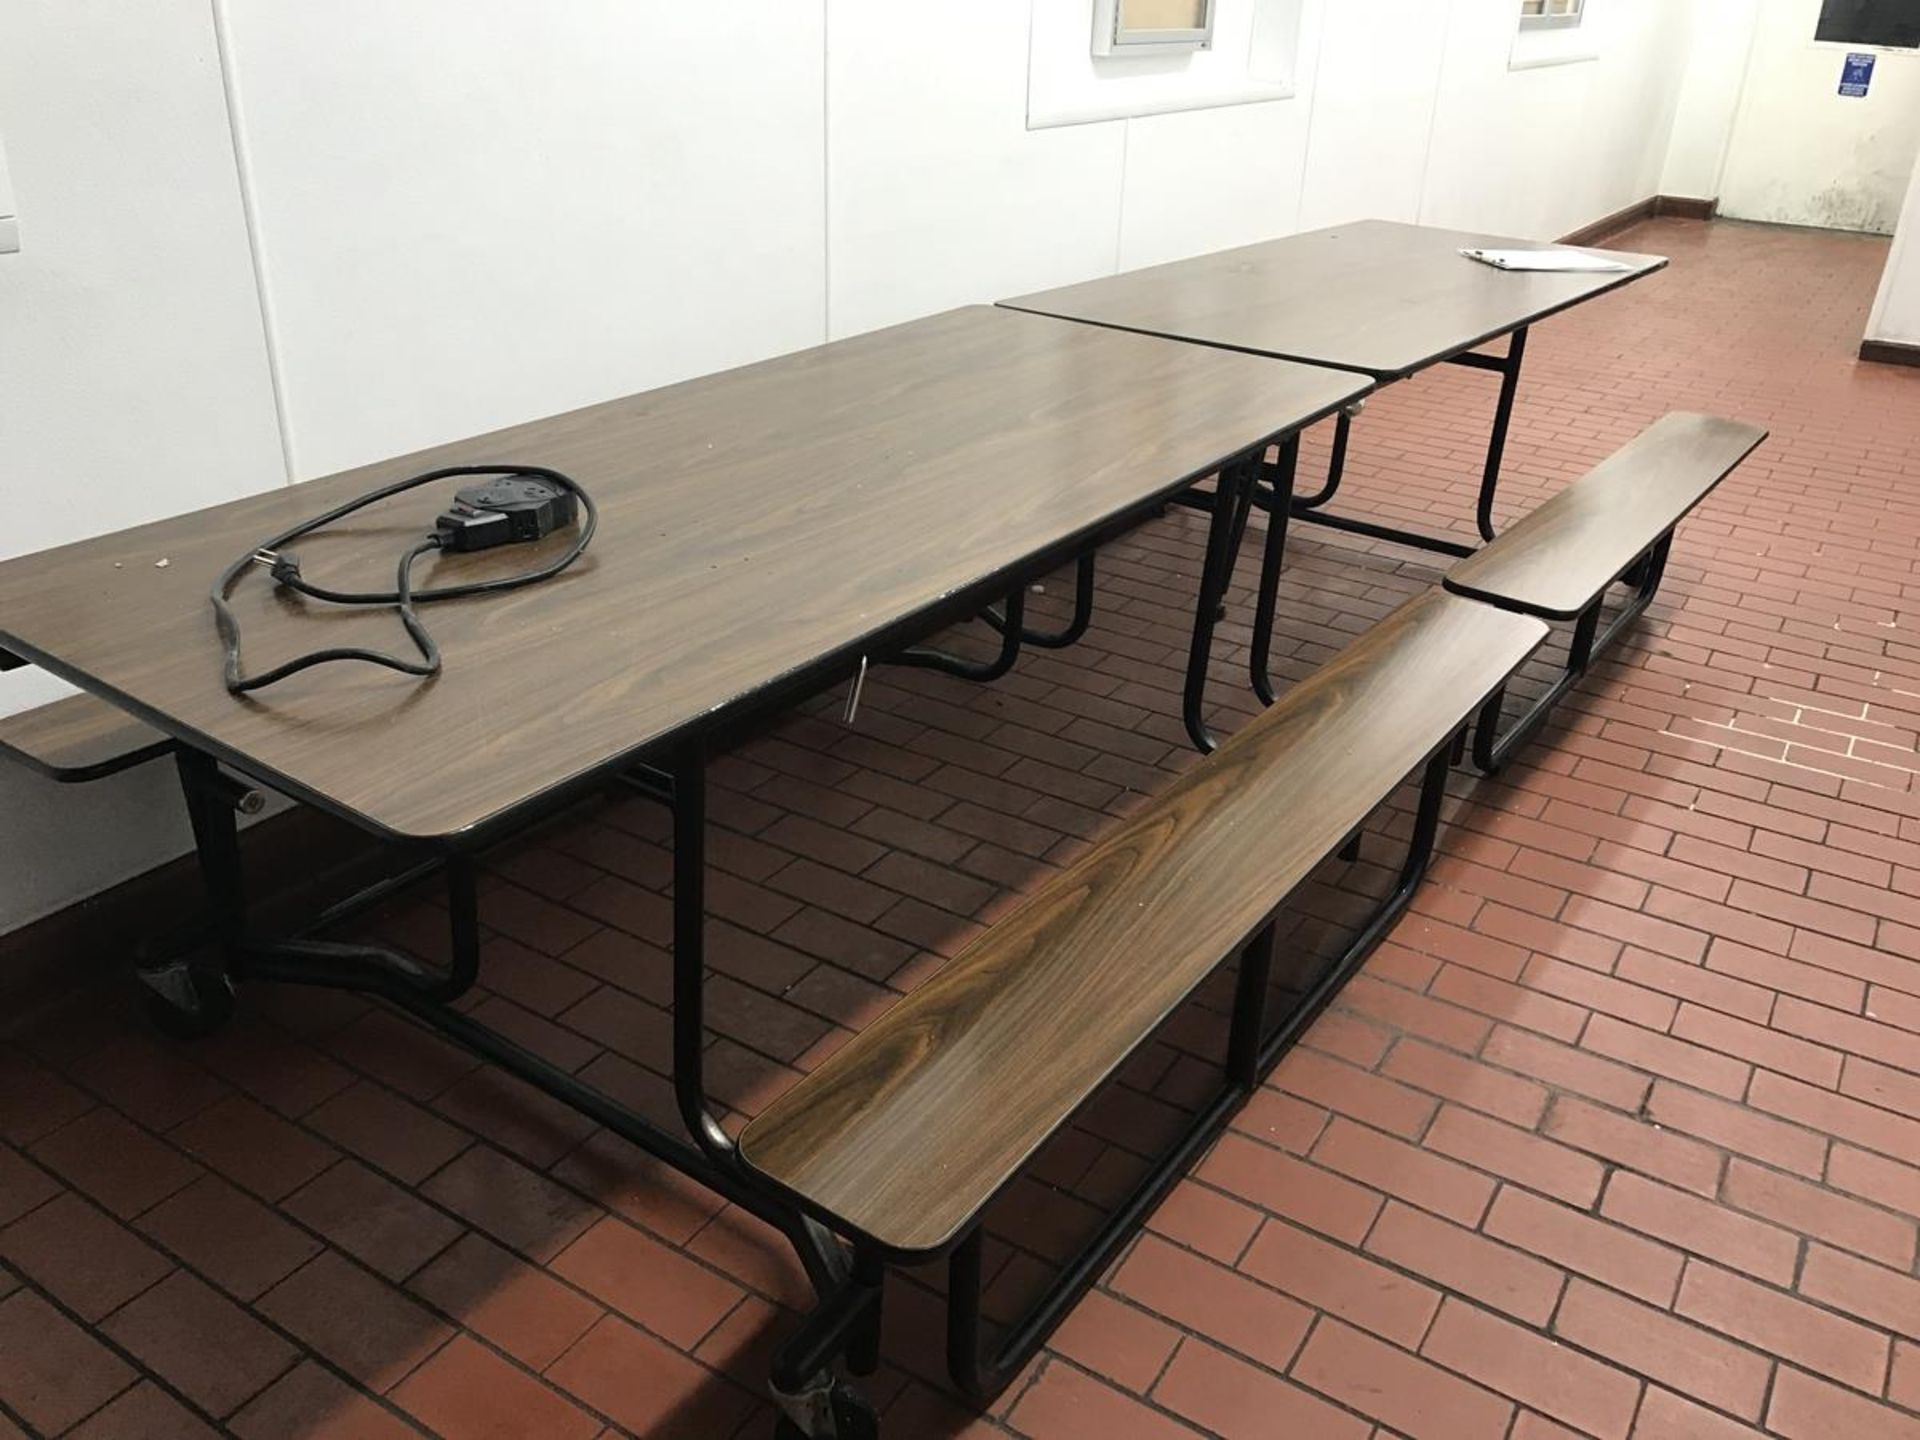 Lot 359 - (2) Folding Picnic Tables, Metro Racking, 4 Wheel Cart in lunch room, microwave | Rig Fee: $150